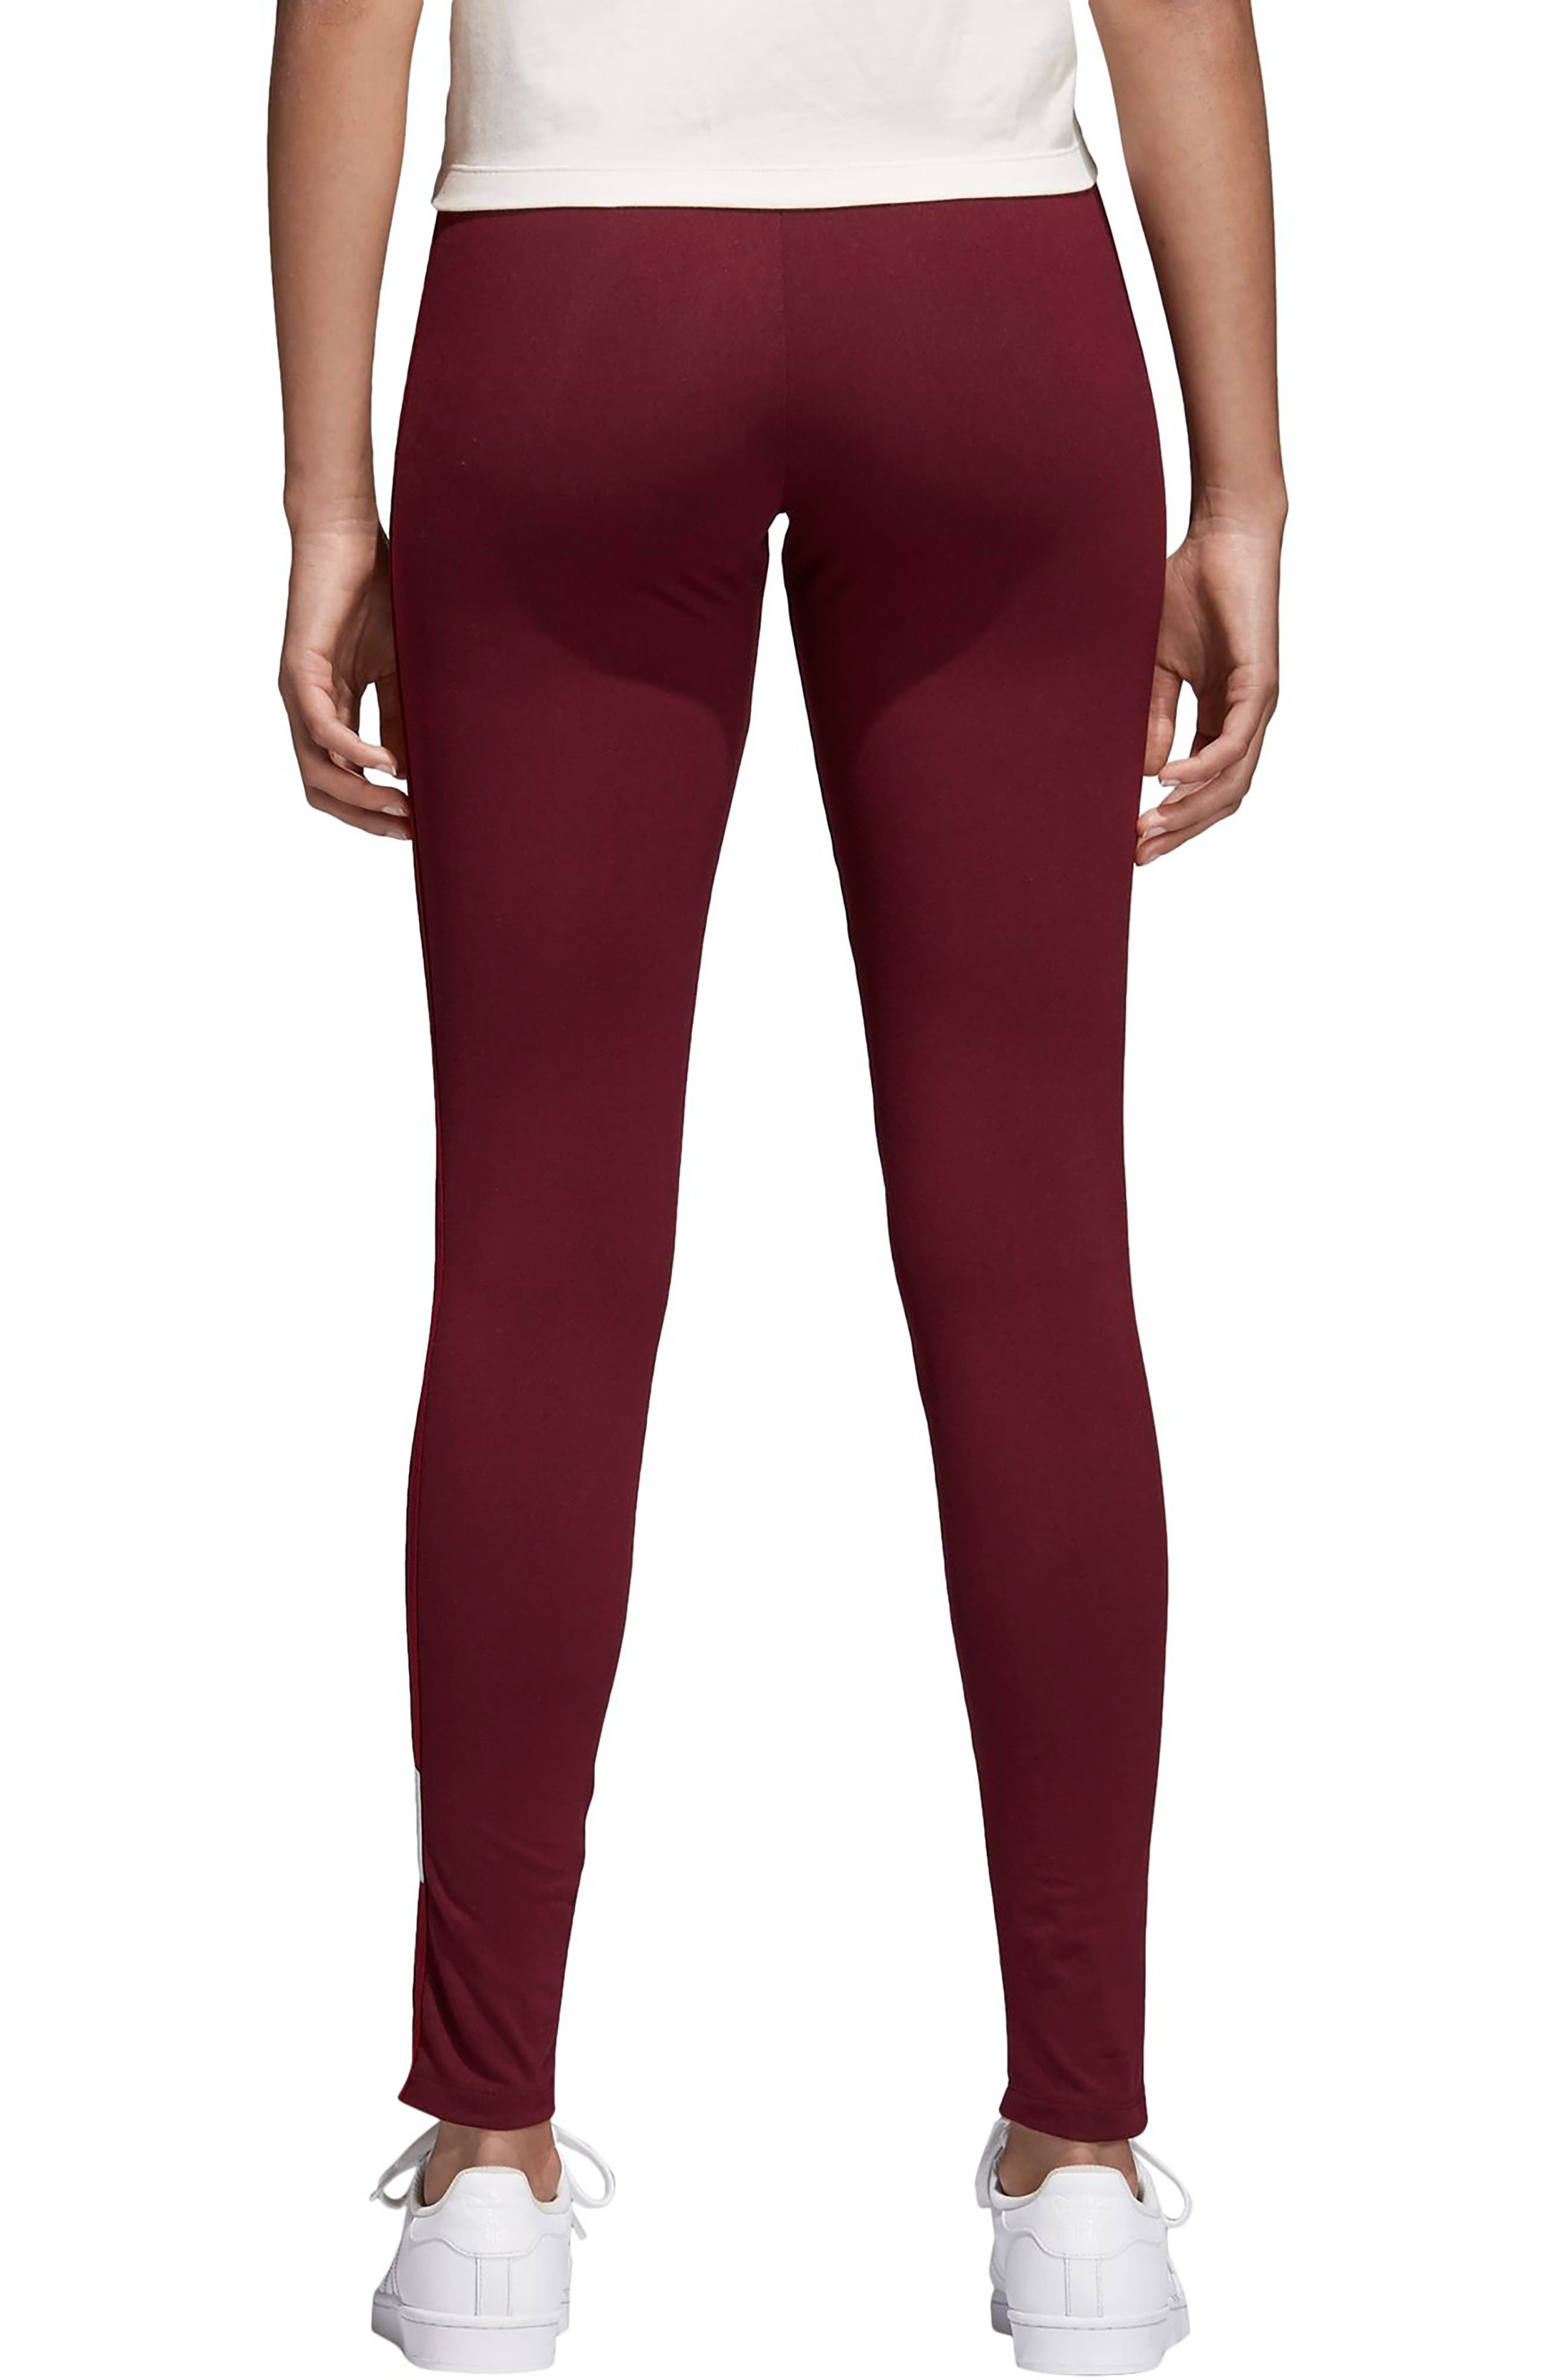 Originals Adibreak Tights,                             Alternate thumbnail 2, color,                             Maroon